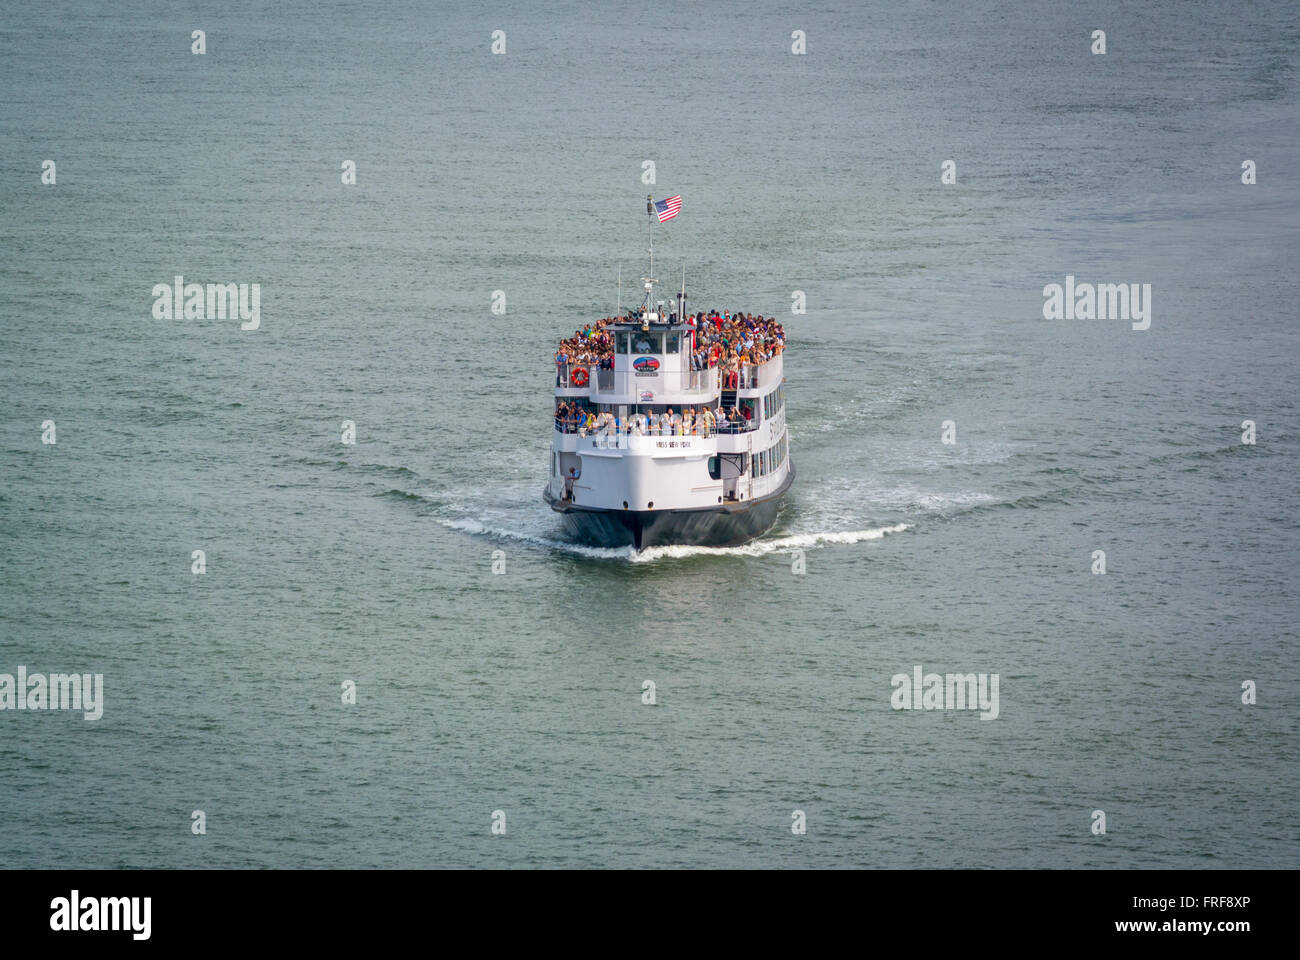 Statue Cruises tourist boat, New York, USA. - Stock Image